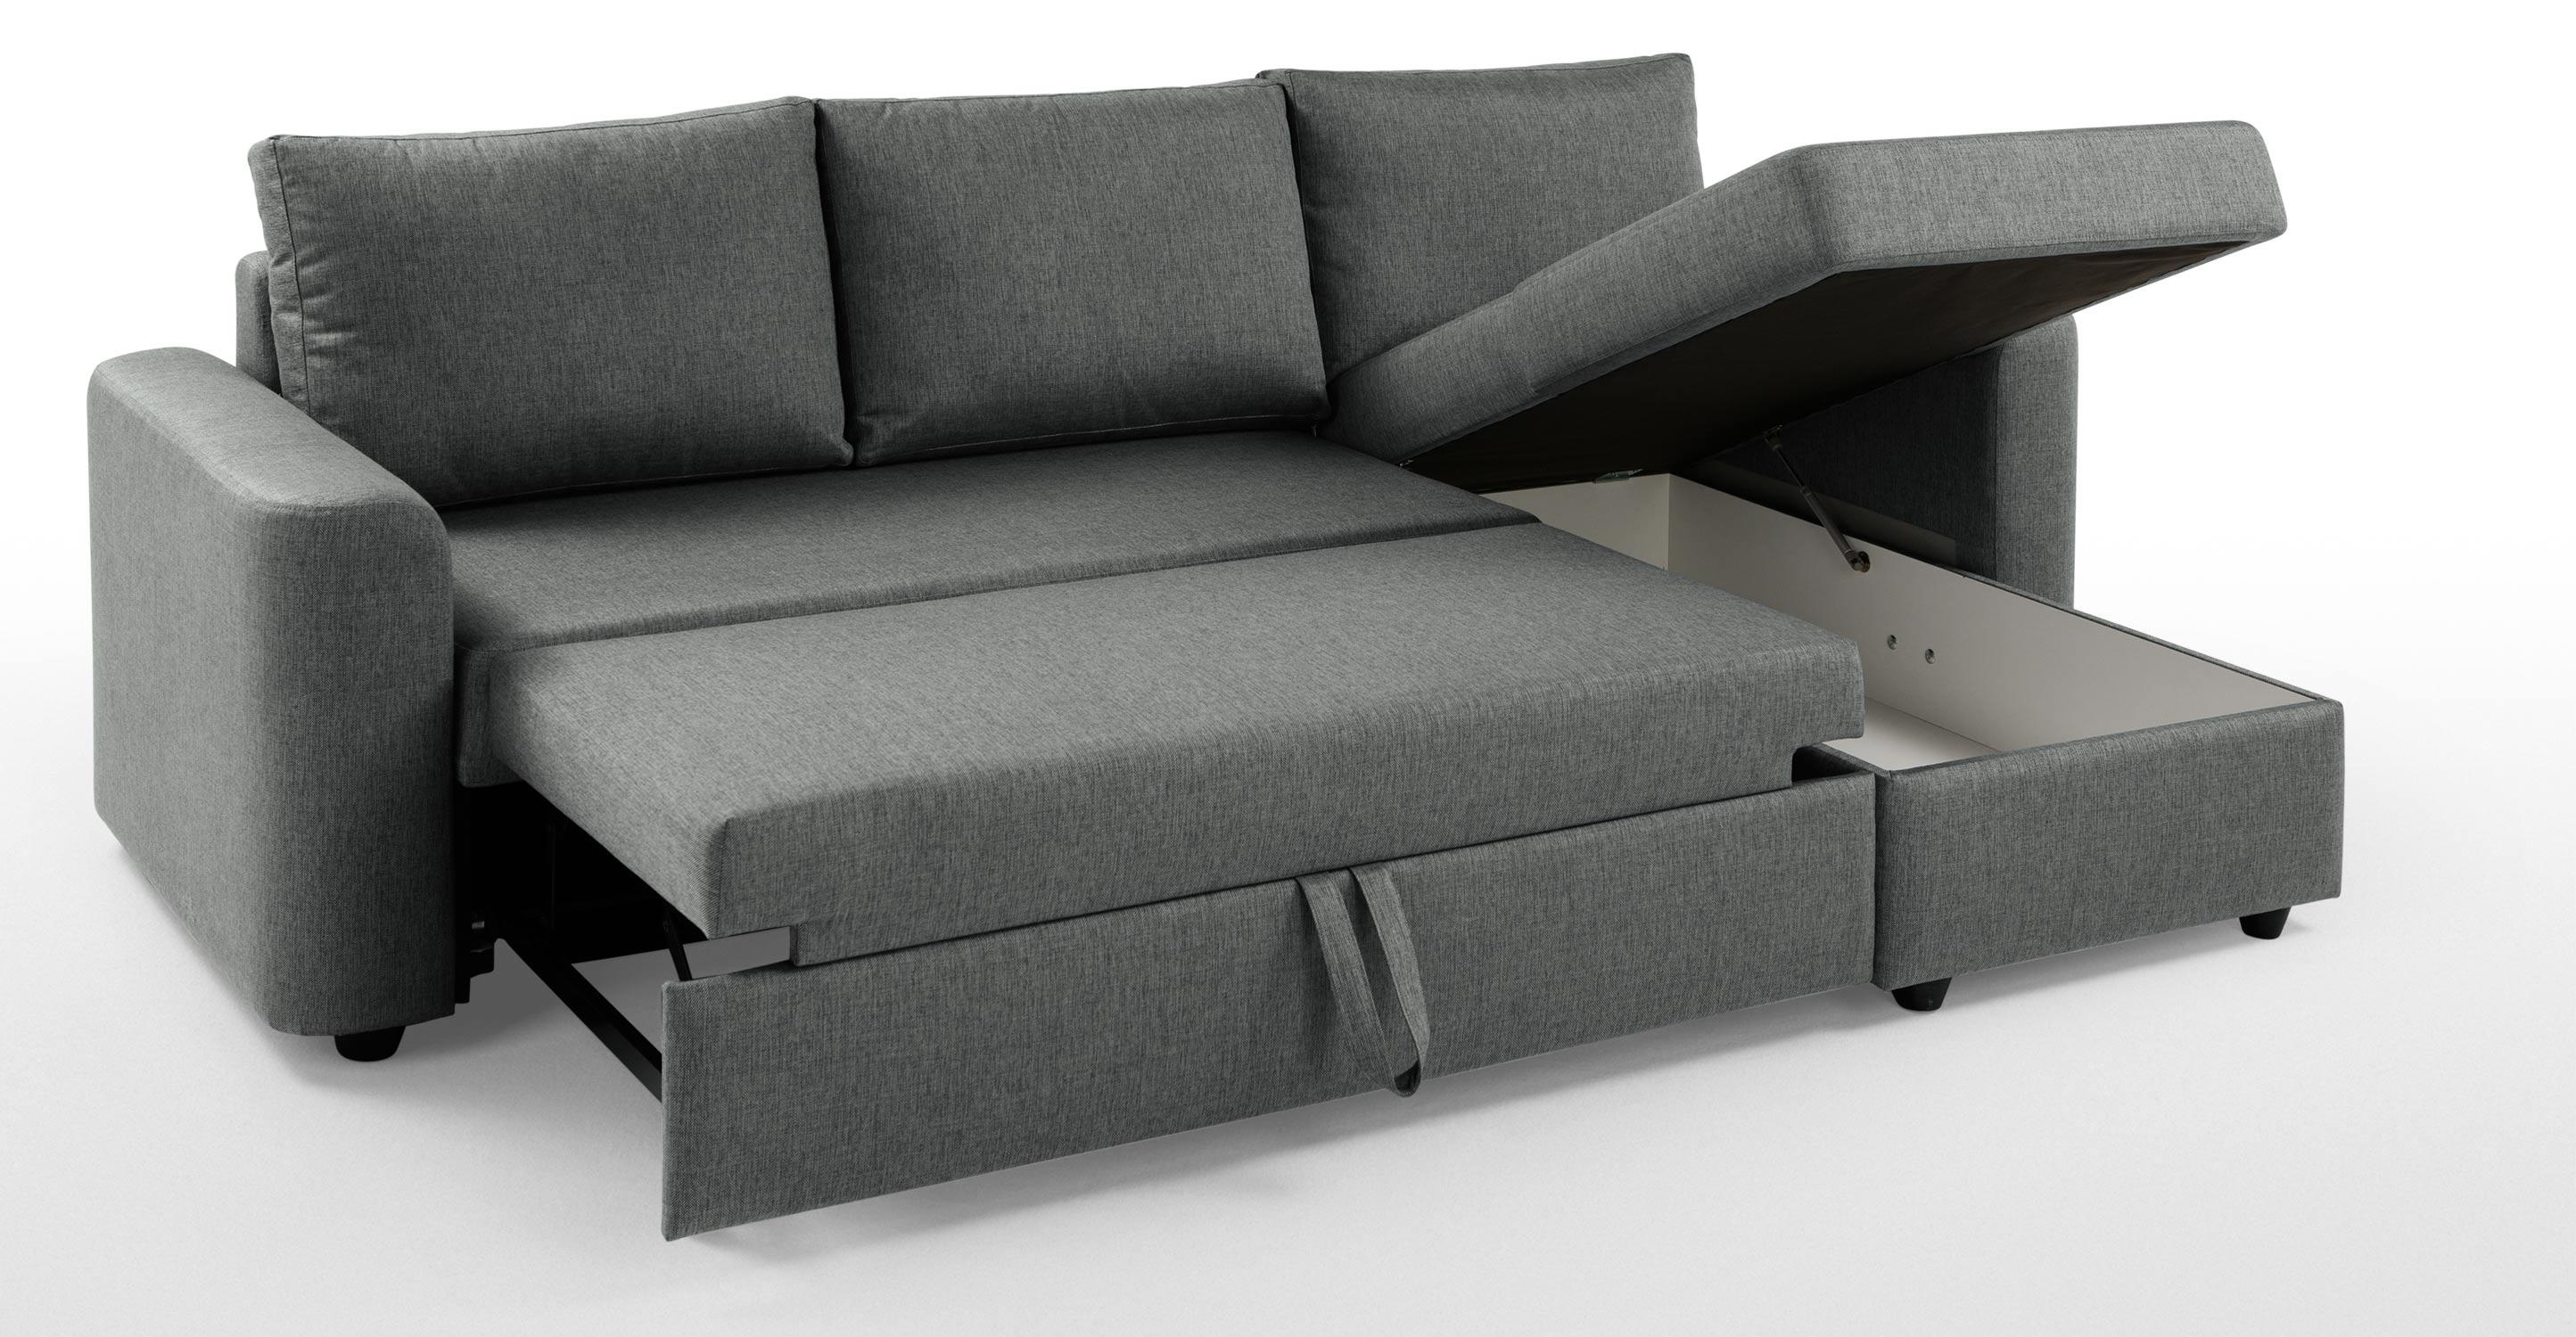 corner sofa bed london ashley furniture cushion replacement 20 inspirations beds with storages ideas